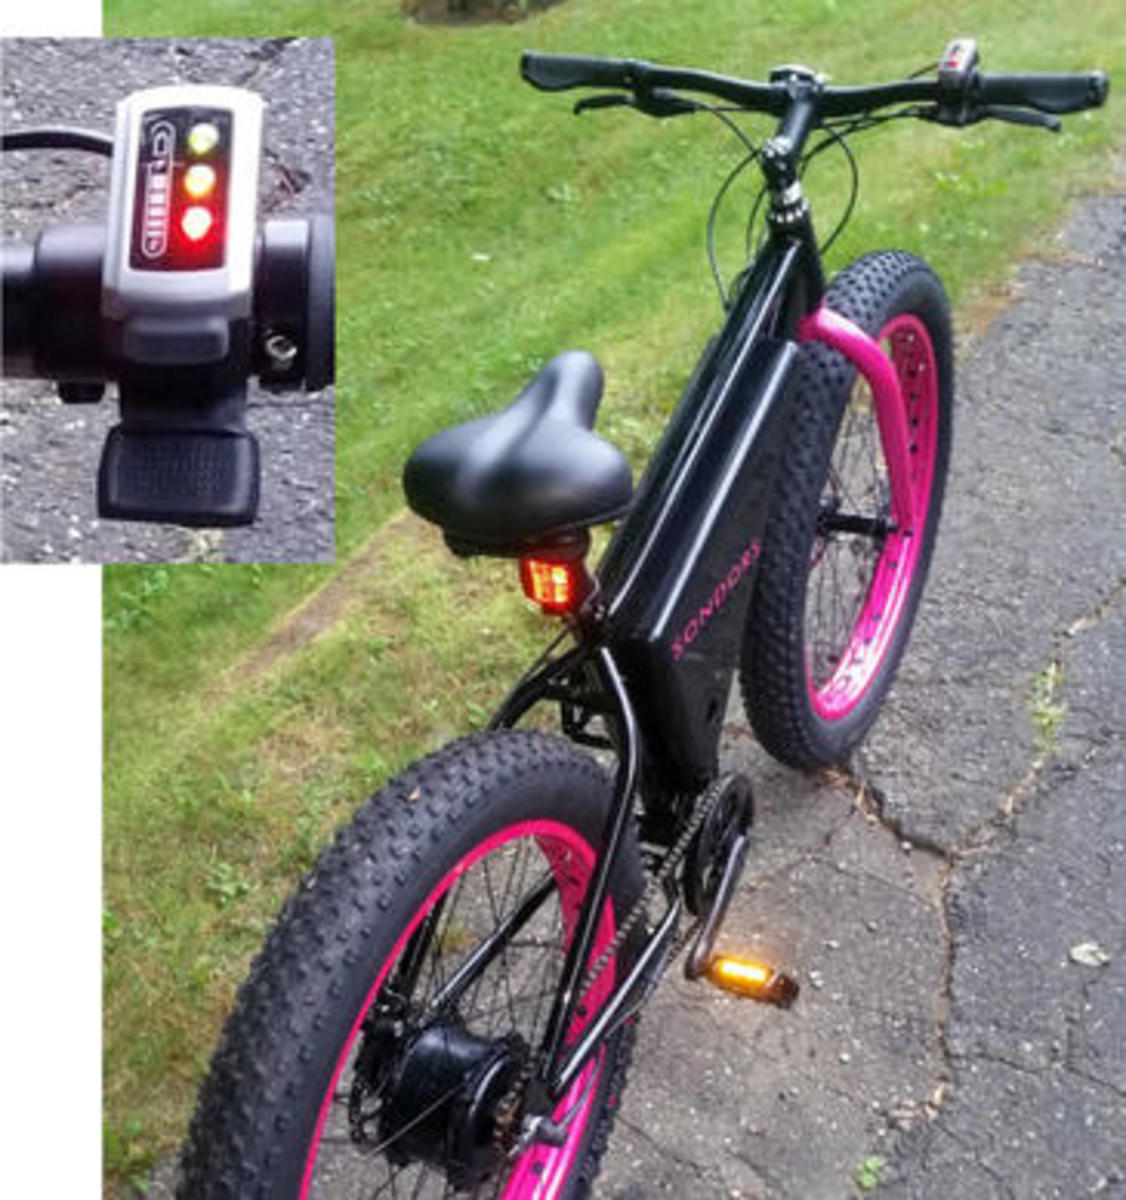 Sondors_original_electric_bike_views_cPanbo.jpg